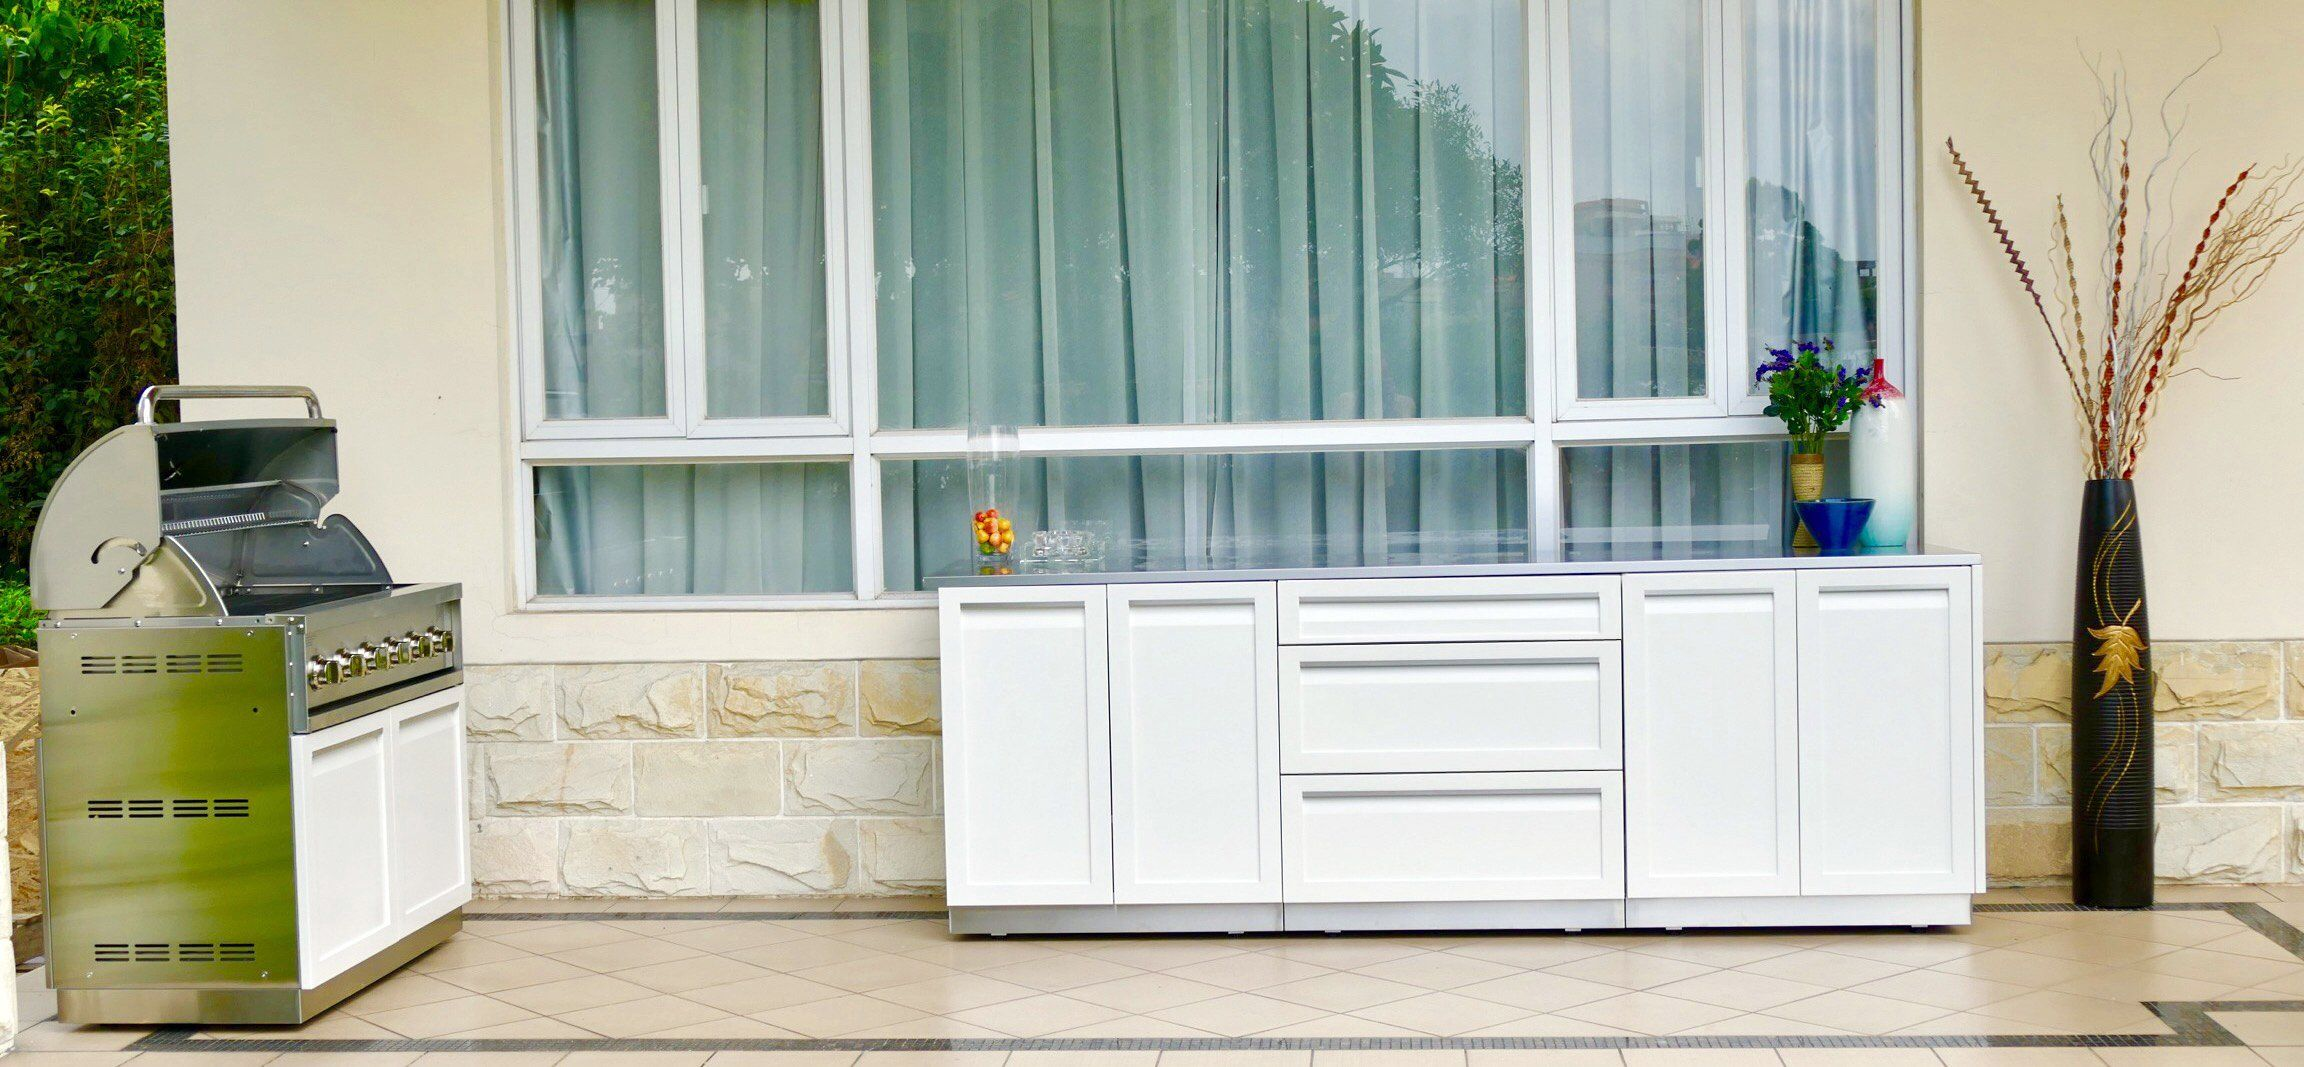 4 Life Outdoor W40079 Kitchen Cabinet 4 Piece Set 106 X 36 X 23 5 Stainless Steel Frames White Doors Details Can Be Found By Clic Outdoor Kitchen Cabinets White Doors Outdoor Storage